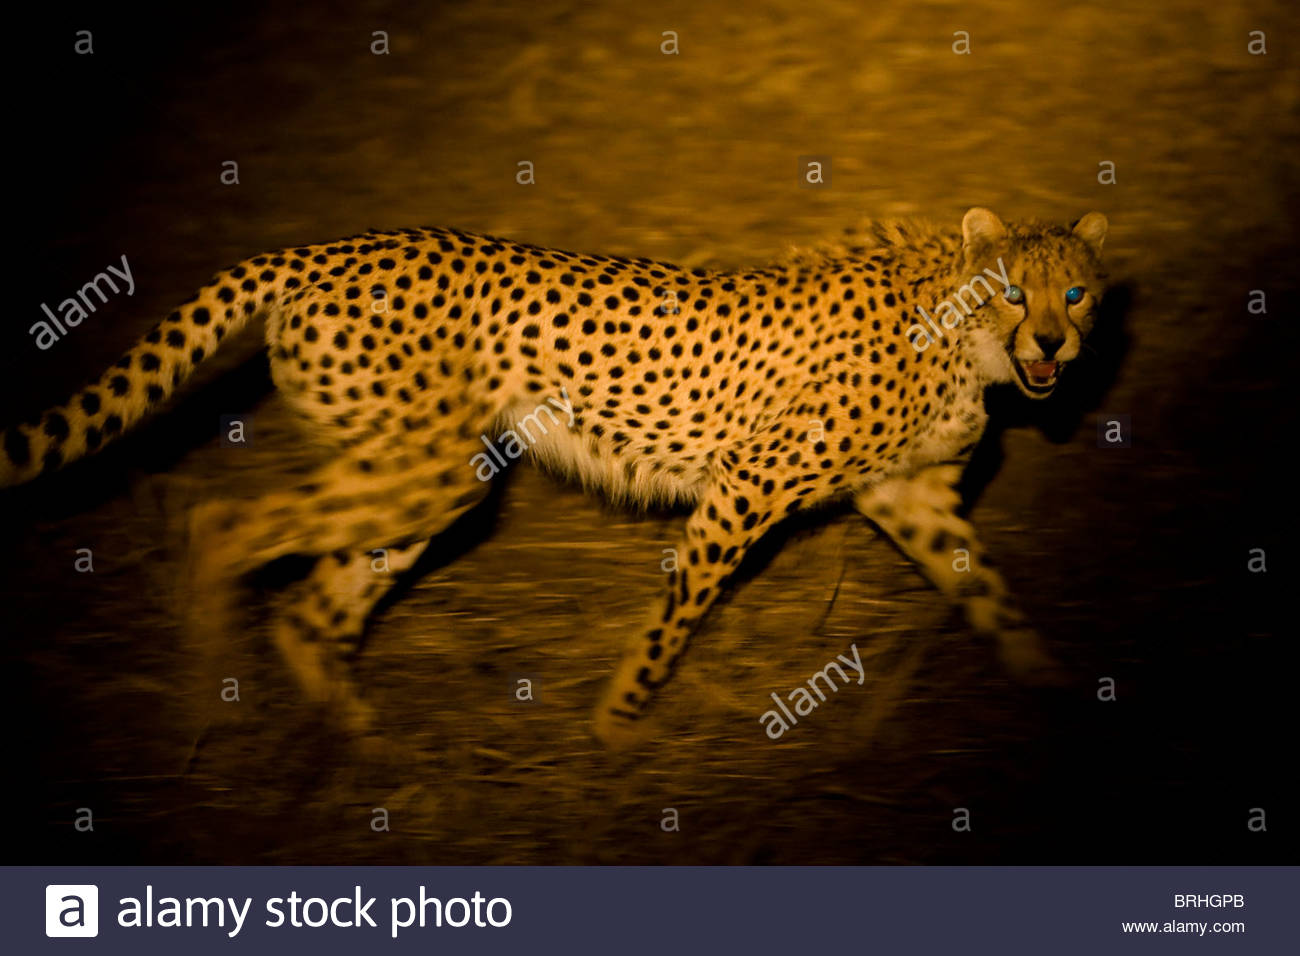 An open-mouthed cheetah walks past a spot light. - Stock Image